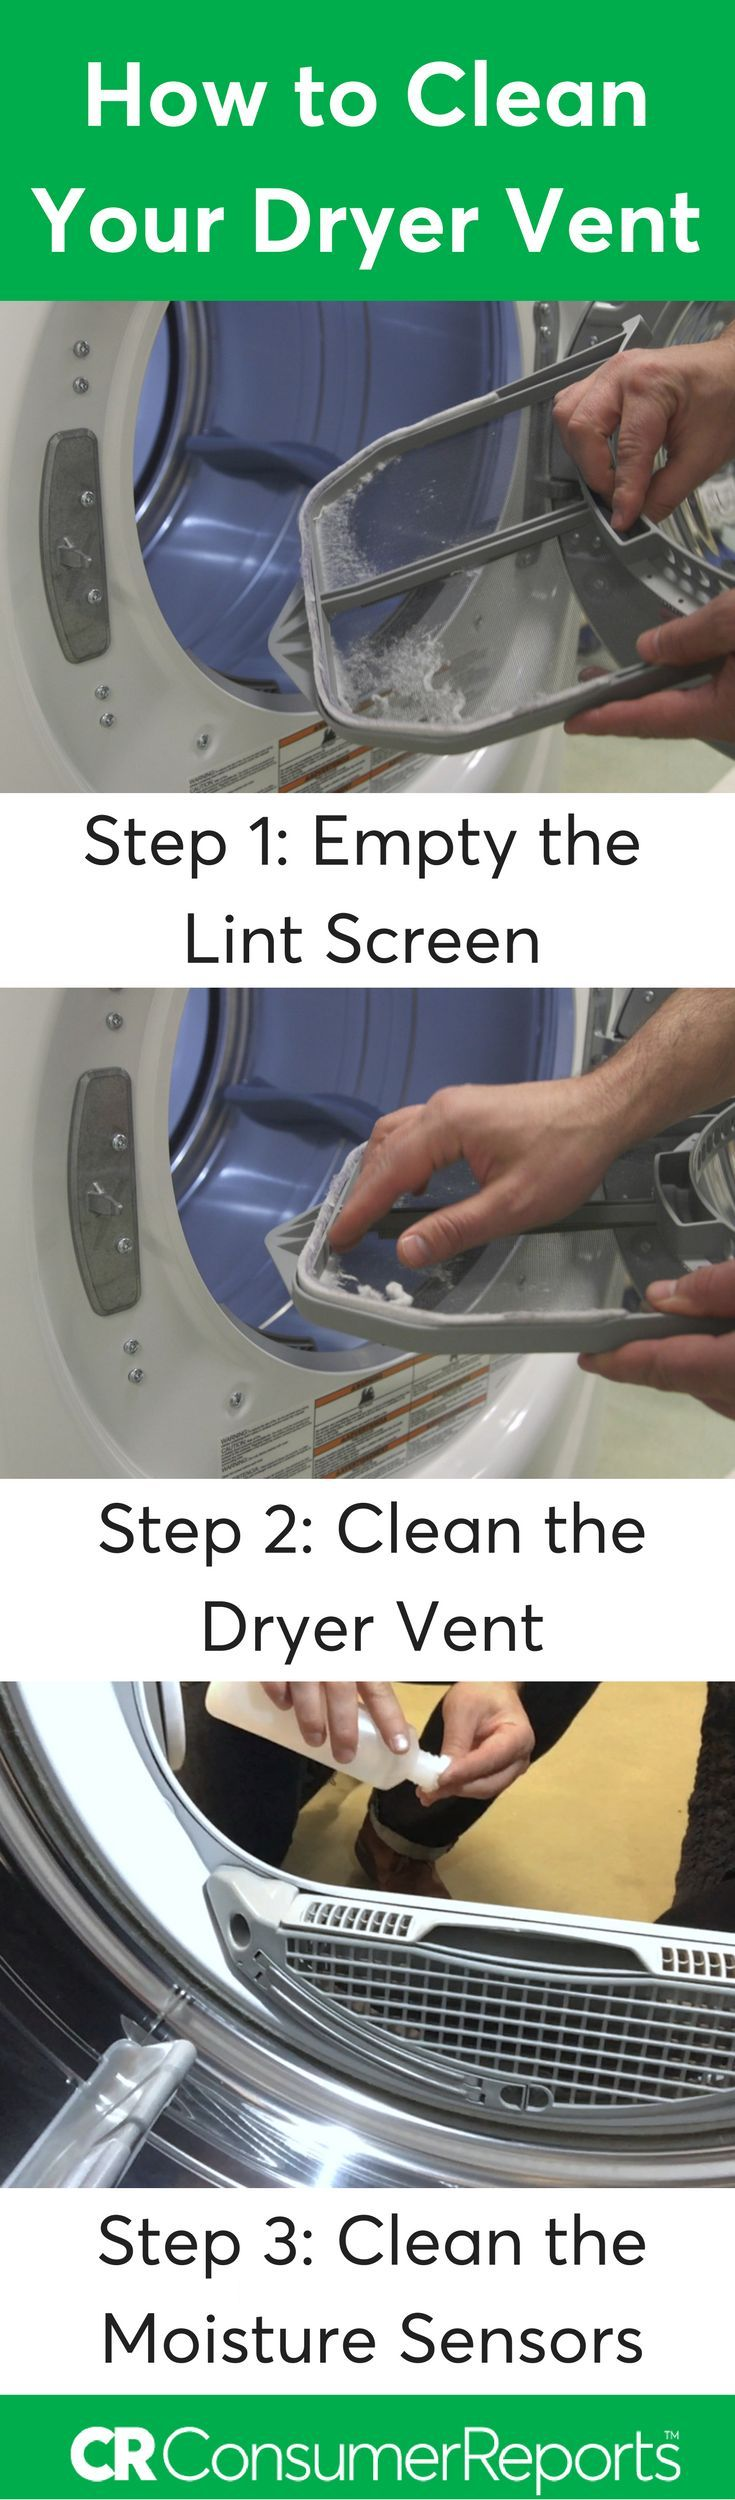 Not taking care of your dryer causes several issues, starting with longer drying times, which can lead to shrunken clothes and heat-damaged fabrics. Worse yet, it can pose a fire danger. Here's how to get peak performance, efficiency, and safety out of your clothes dryer in a few simple steps.